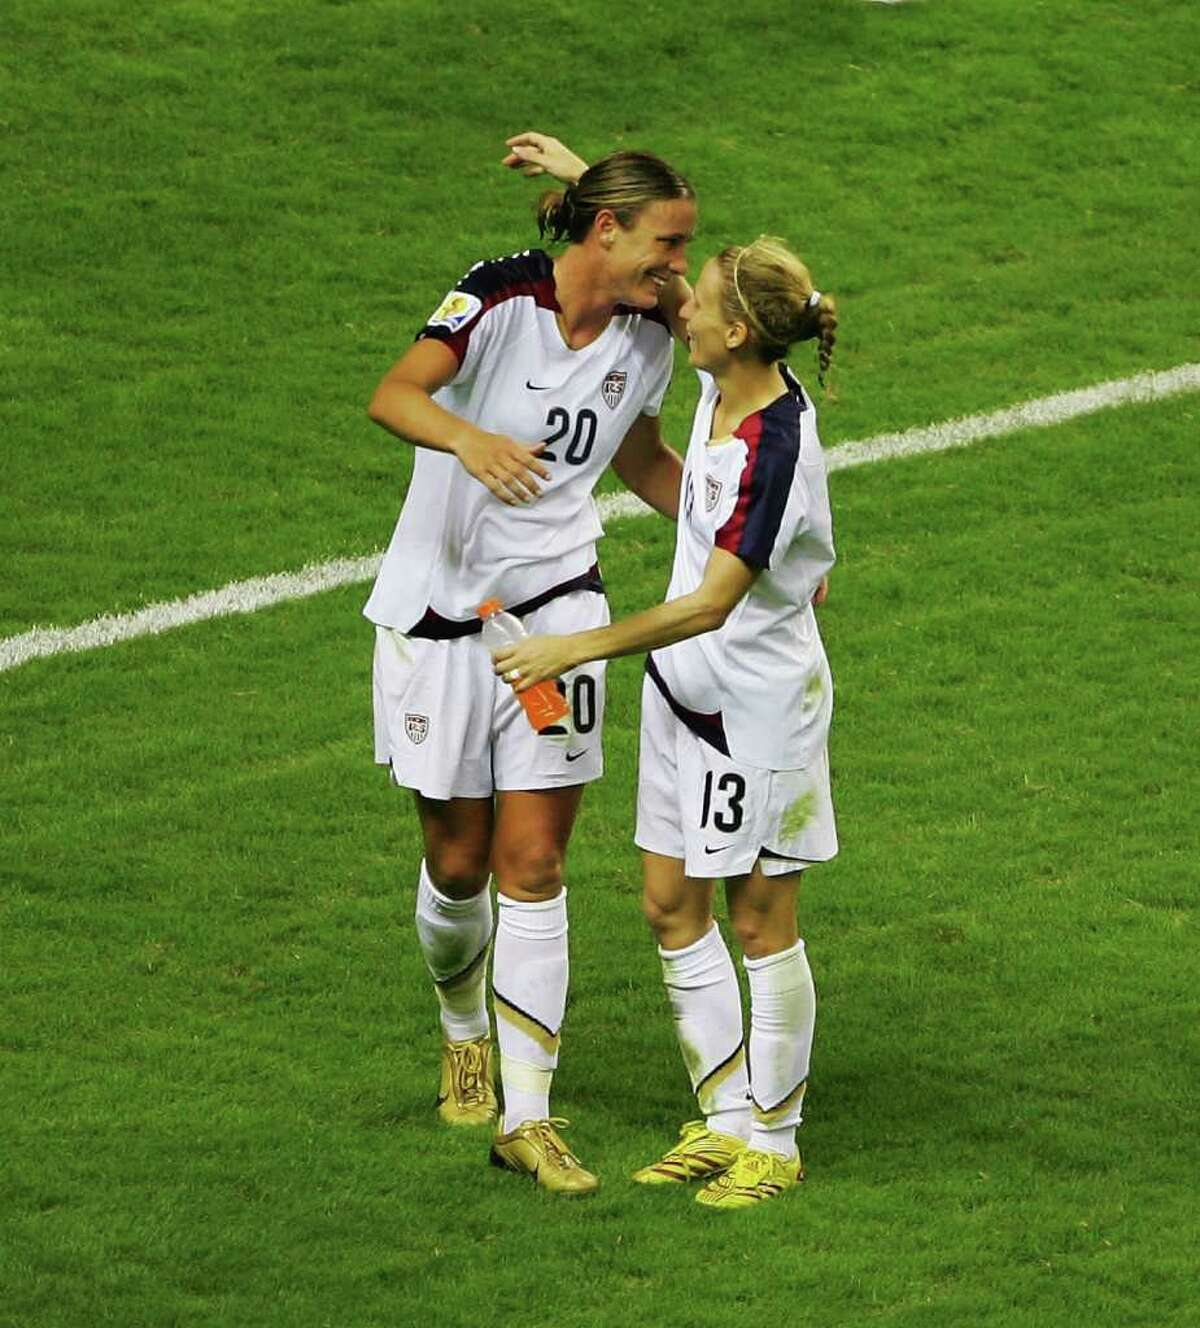 SHANGHAI, CHINA - SEPTEMBER 30: Abby Wambach (L) of USA celebrates with teammate Kristine Lilly after winning 4-1 the Women's World Cup 2007 3rd place play off match against Norway at Hongkou Stadium on September 30, 2007 in Shanghai, China. (Photo by Guang Niu/Getty Images) *** Local Caption *** Abby Wambach;Kristine Lilly